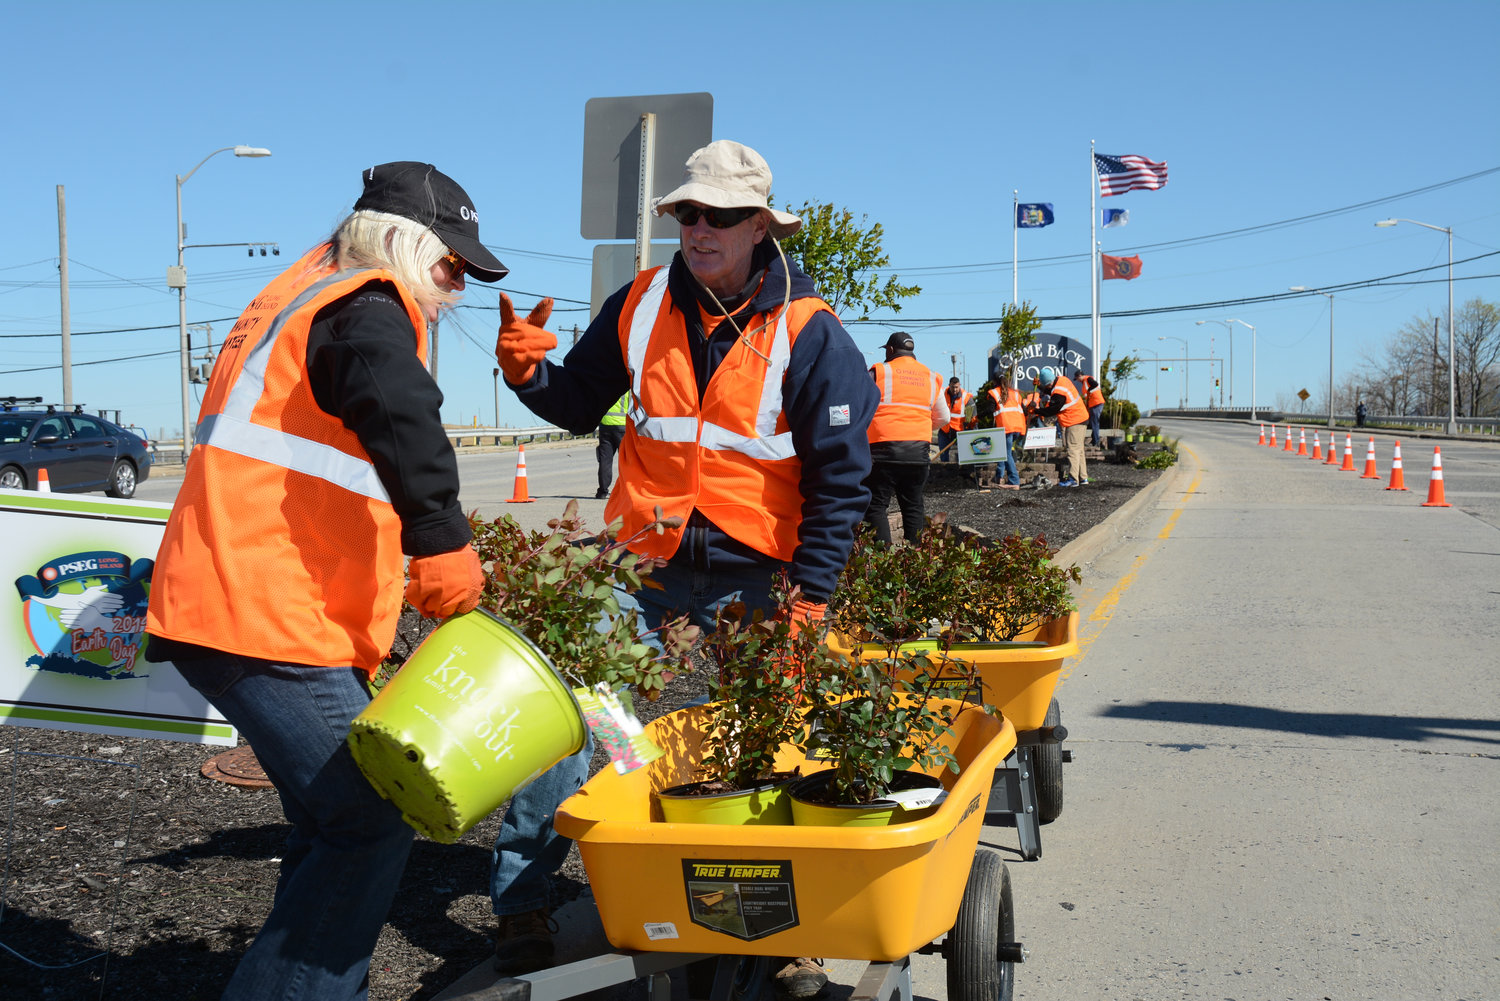 Long Beach resident and PSEG employee Terry Blackburn worked with his colleague, Leighann Thomas, to beautify the median of Long Beach Boulevard as part of PSEG Long Island's Earth Week activities on Tuesday.